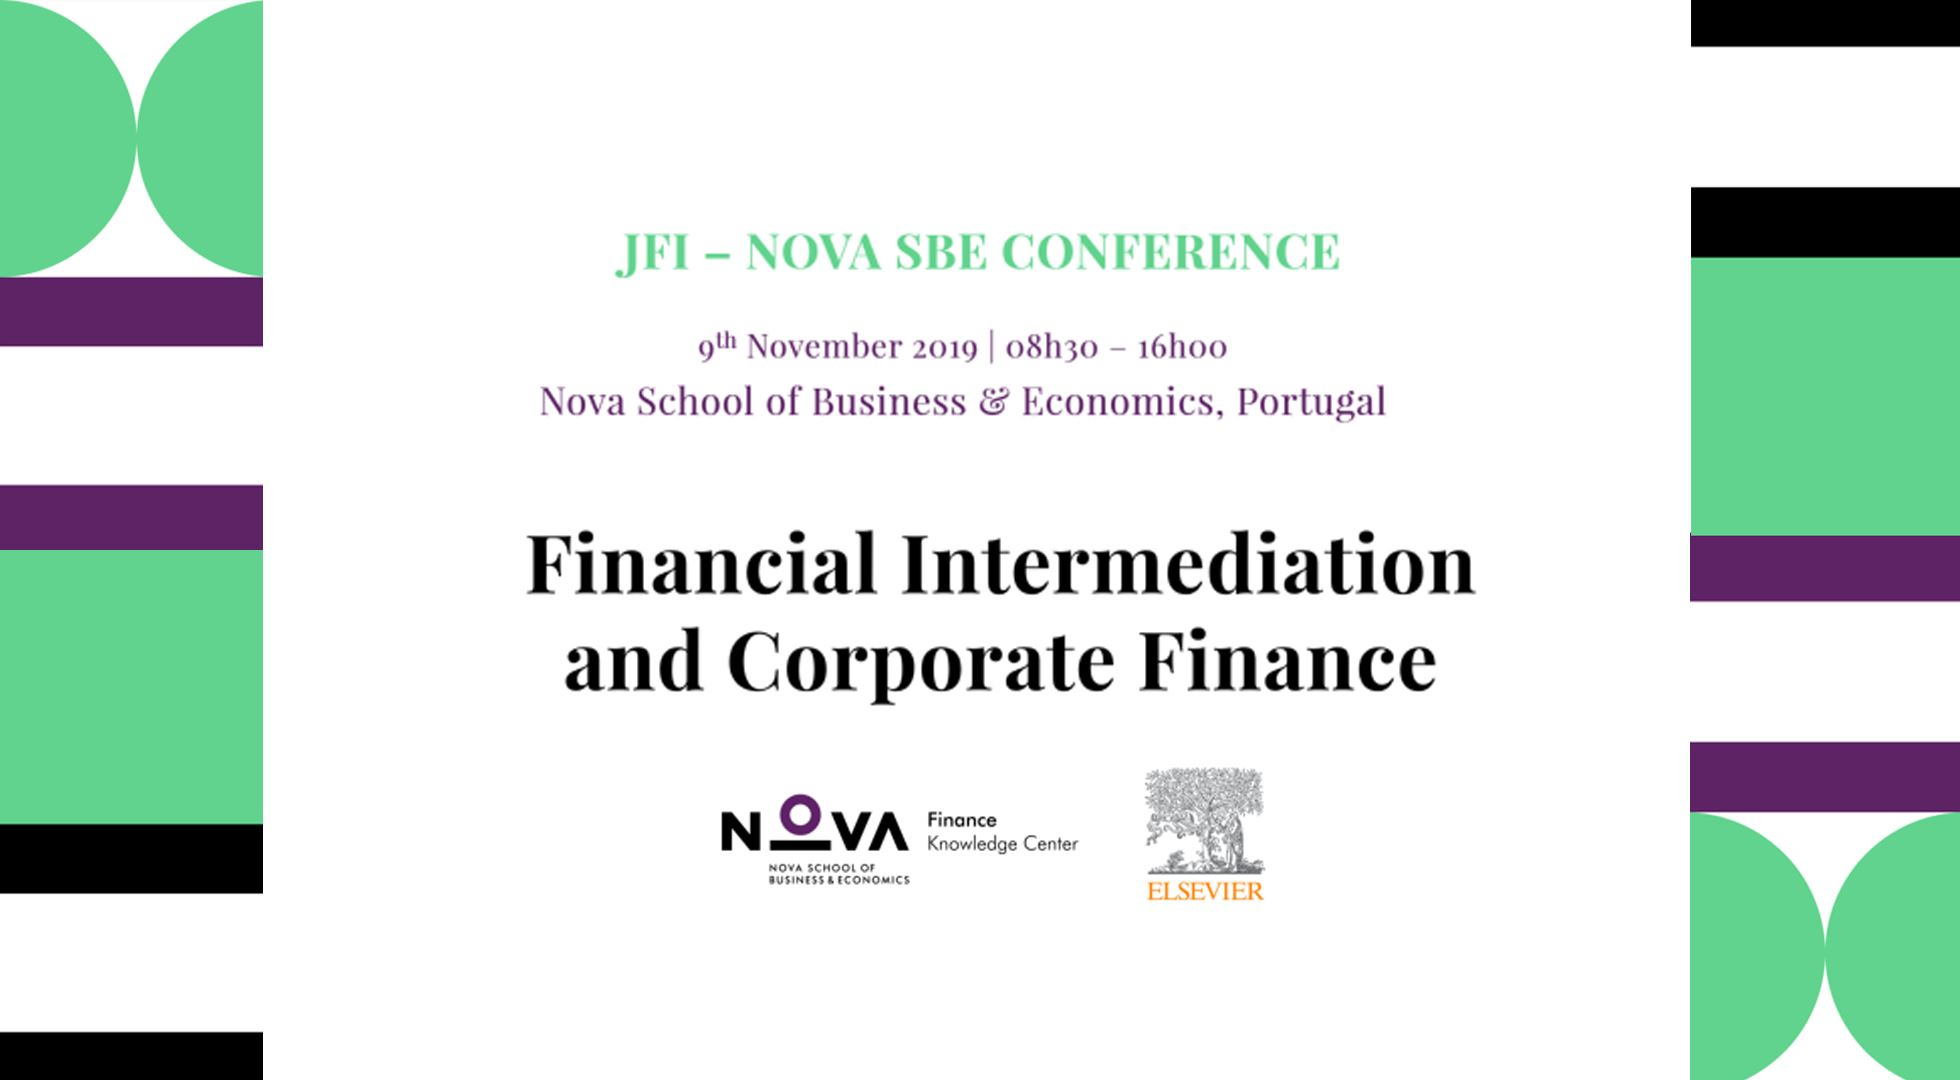 2019 JFI-Nova SBE Conference on Financial Intermediation and Corporate Finance